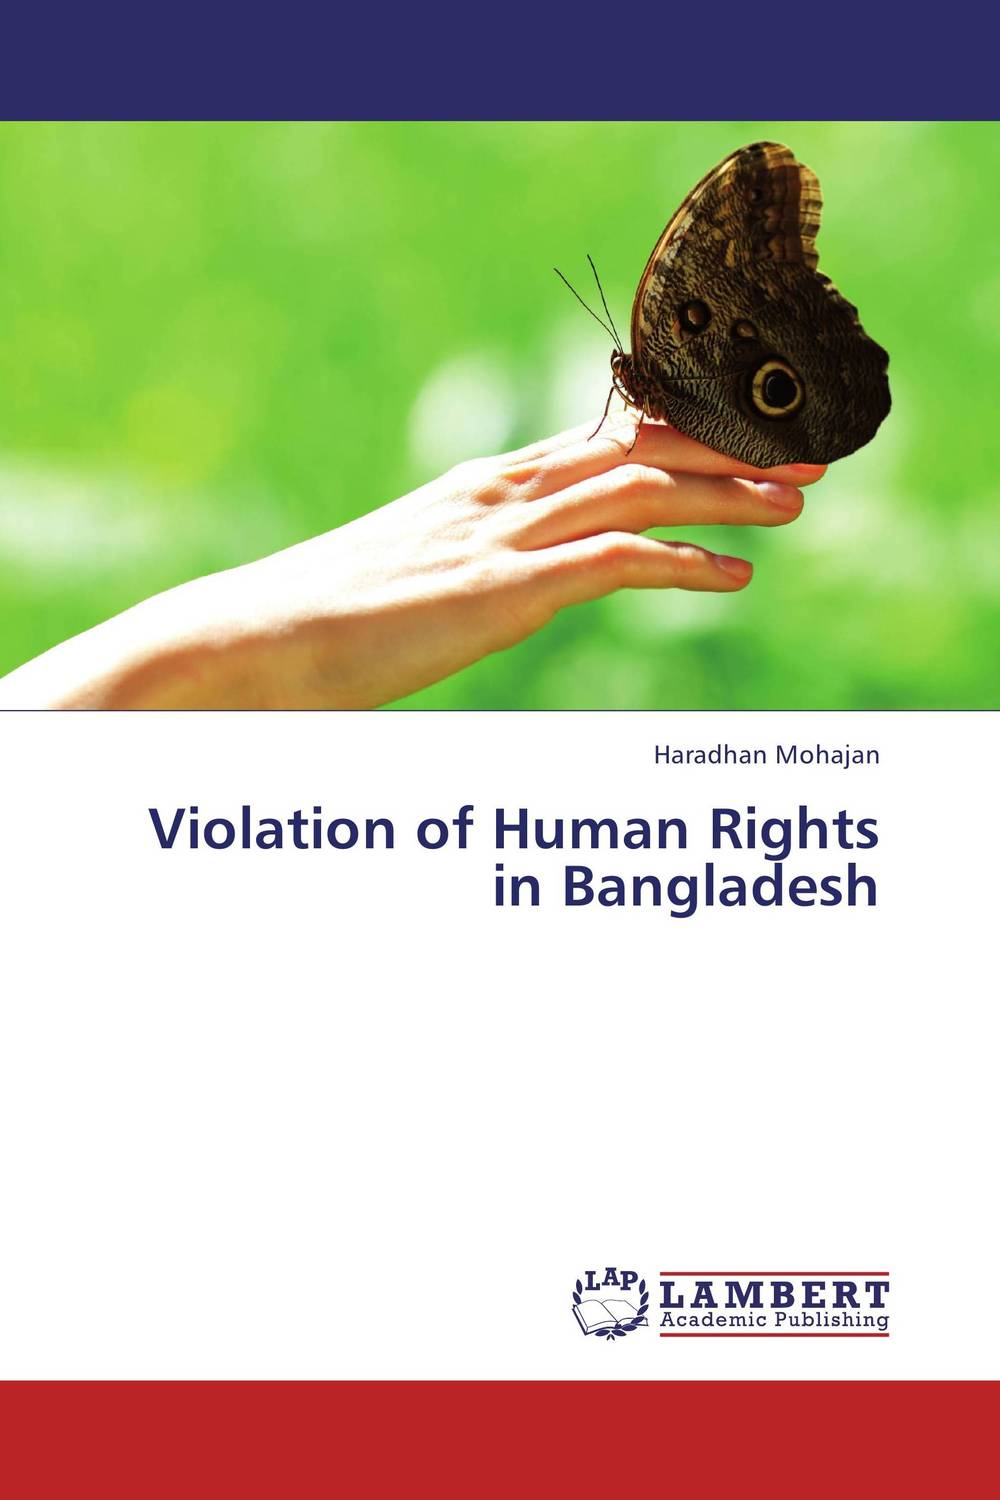 цены Violation of Human Rights in Bangladesh